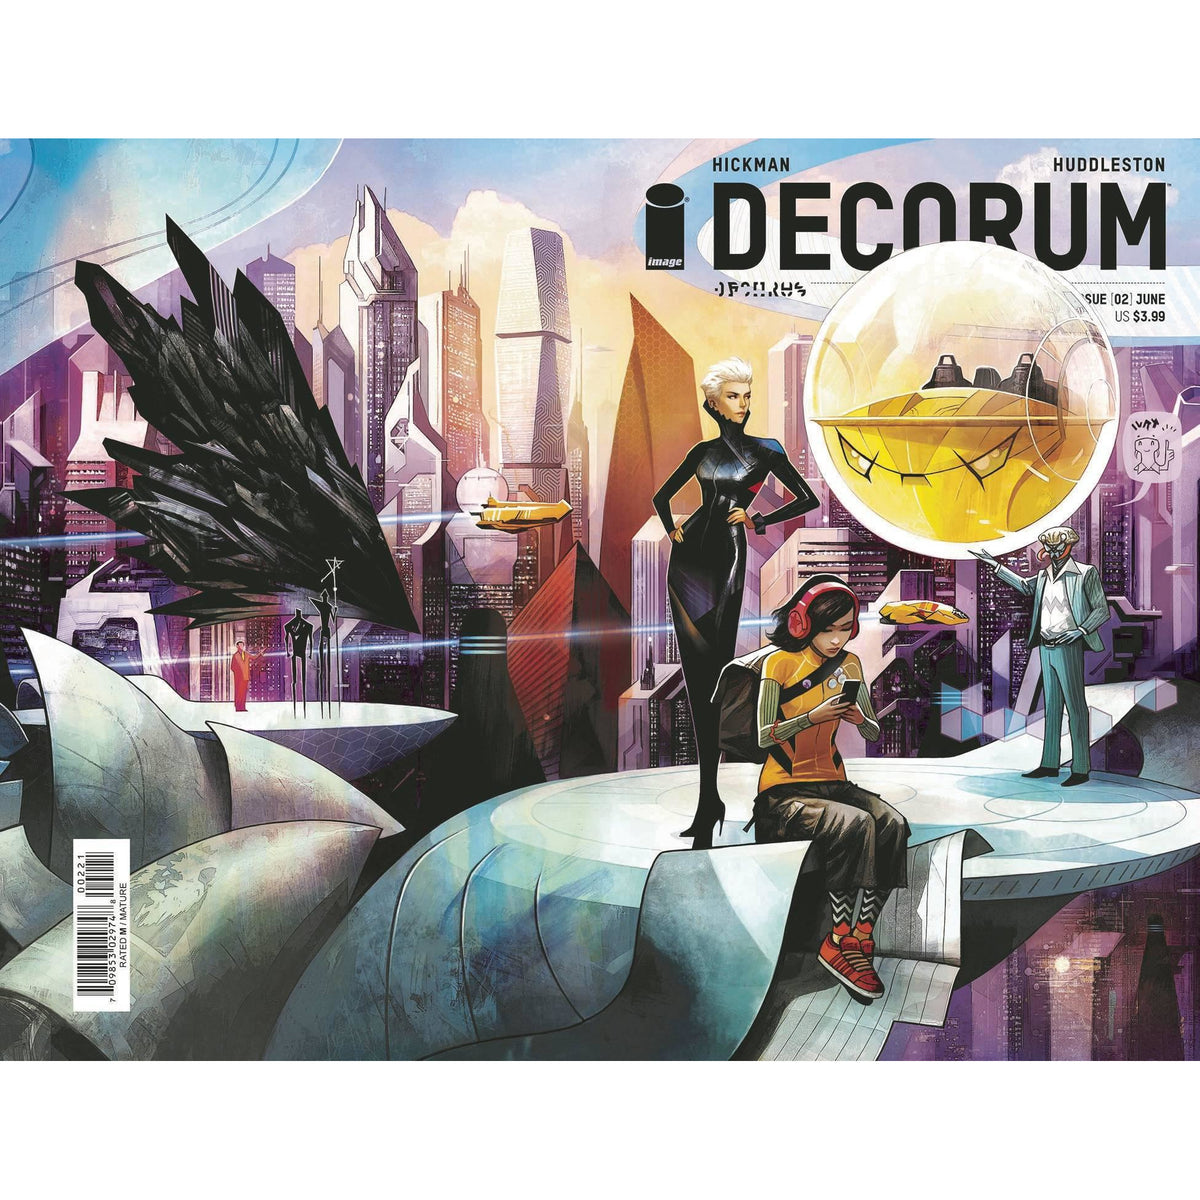 DECORUM #2 - COVER B HUDDLESTON